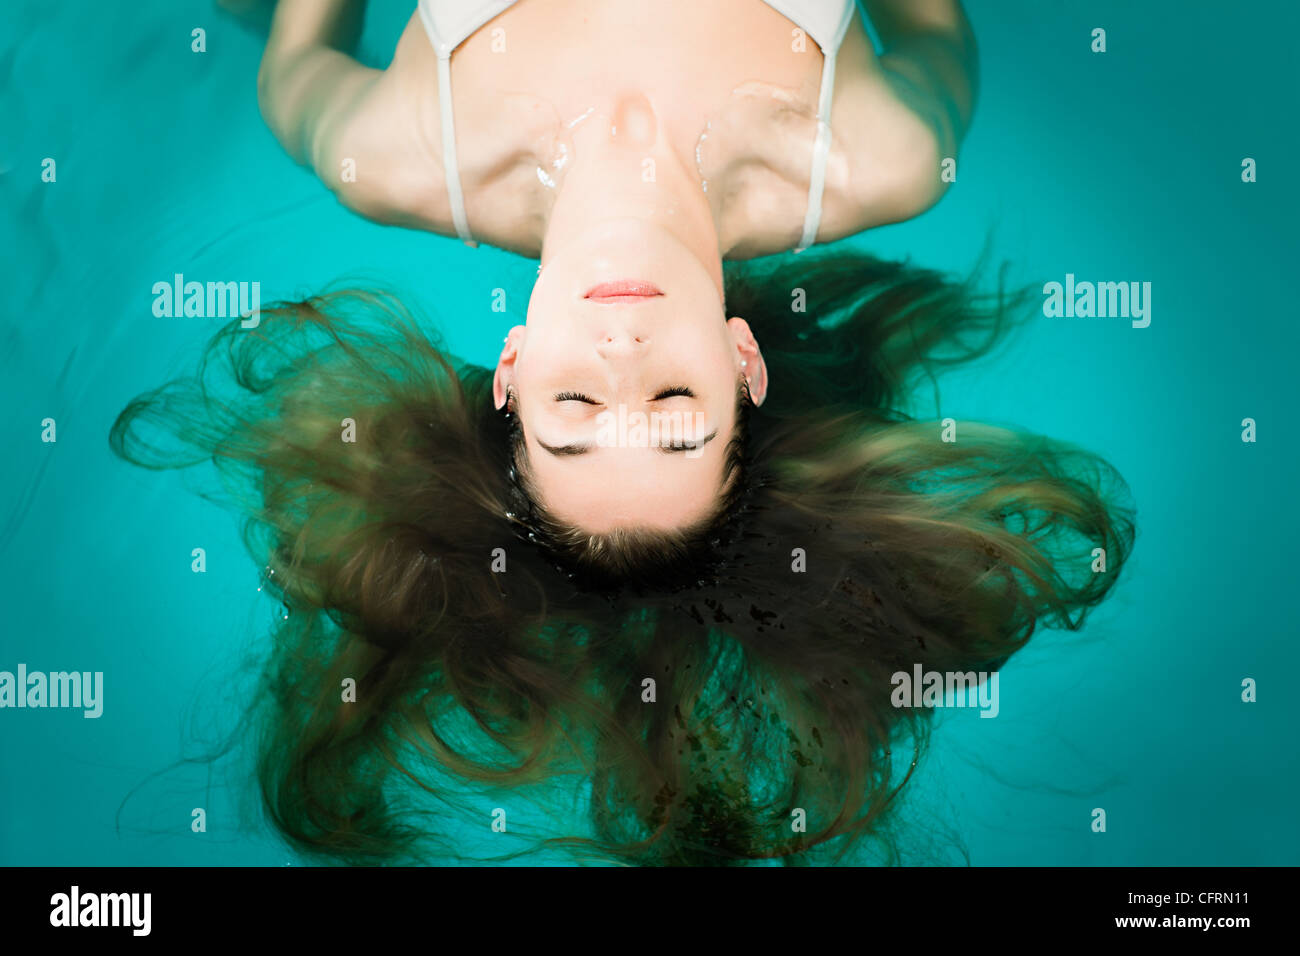 Wellness - young woman floating in Spa or swimming pool, she is very relaxed - Stock Image